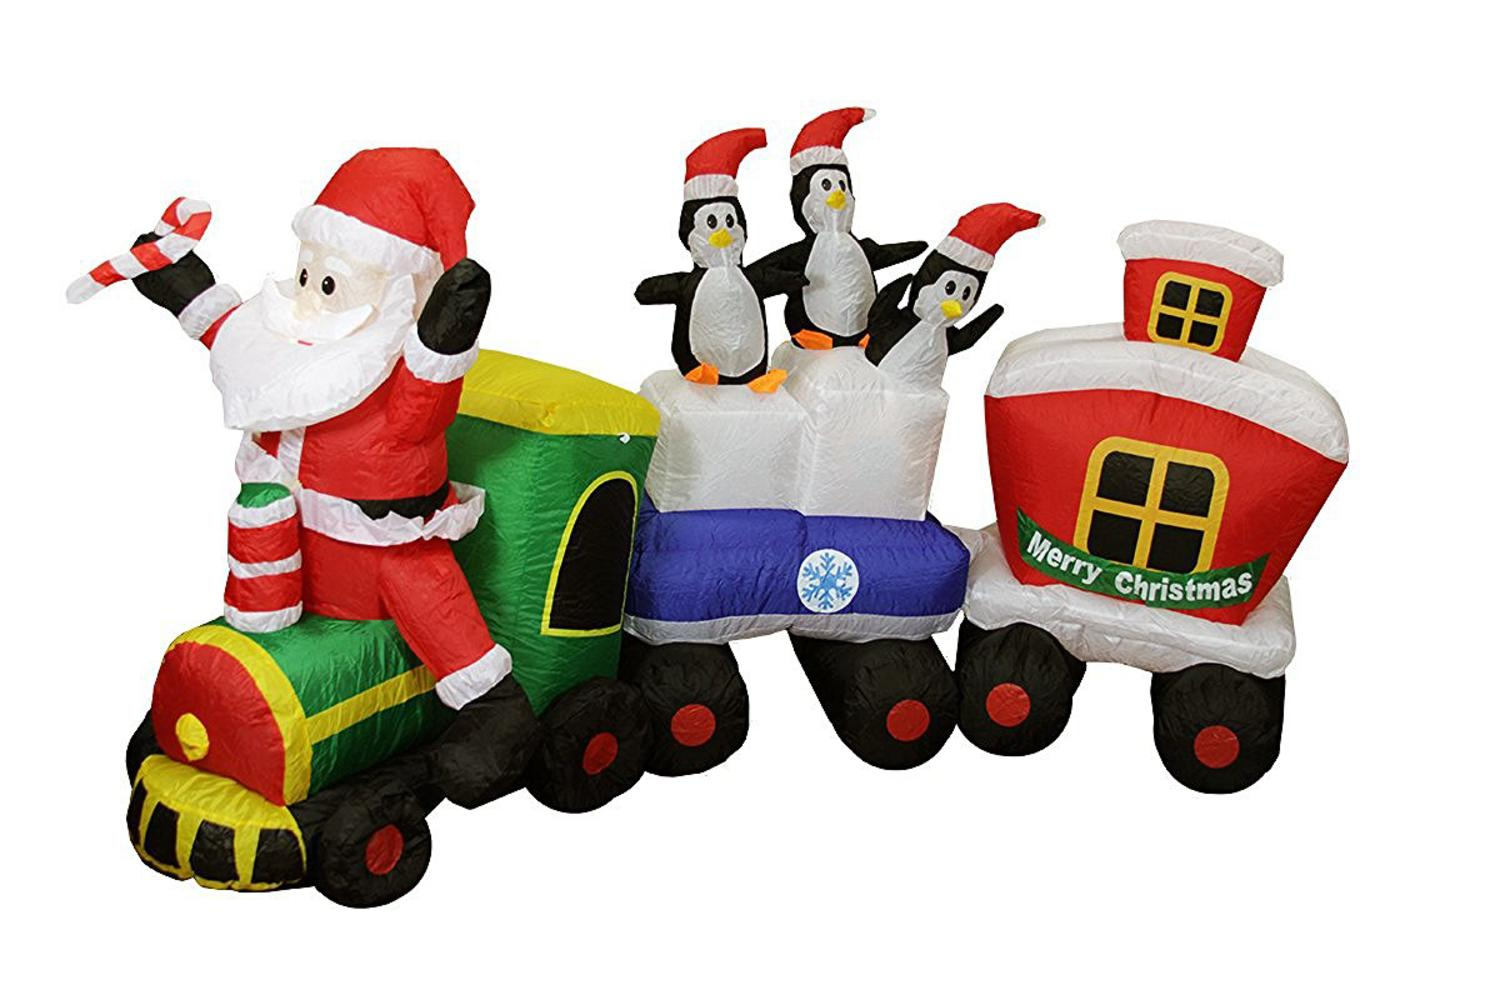 82 Inflatable Lighted Santa Express Train Christmas Outdoor Decoration - Walmart.com